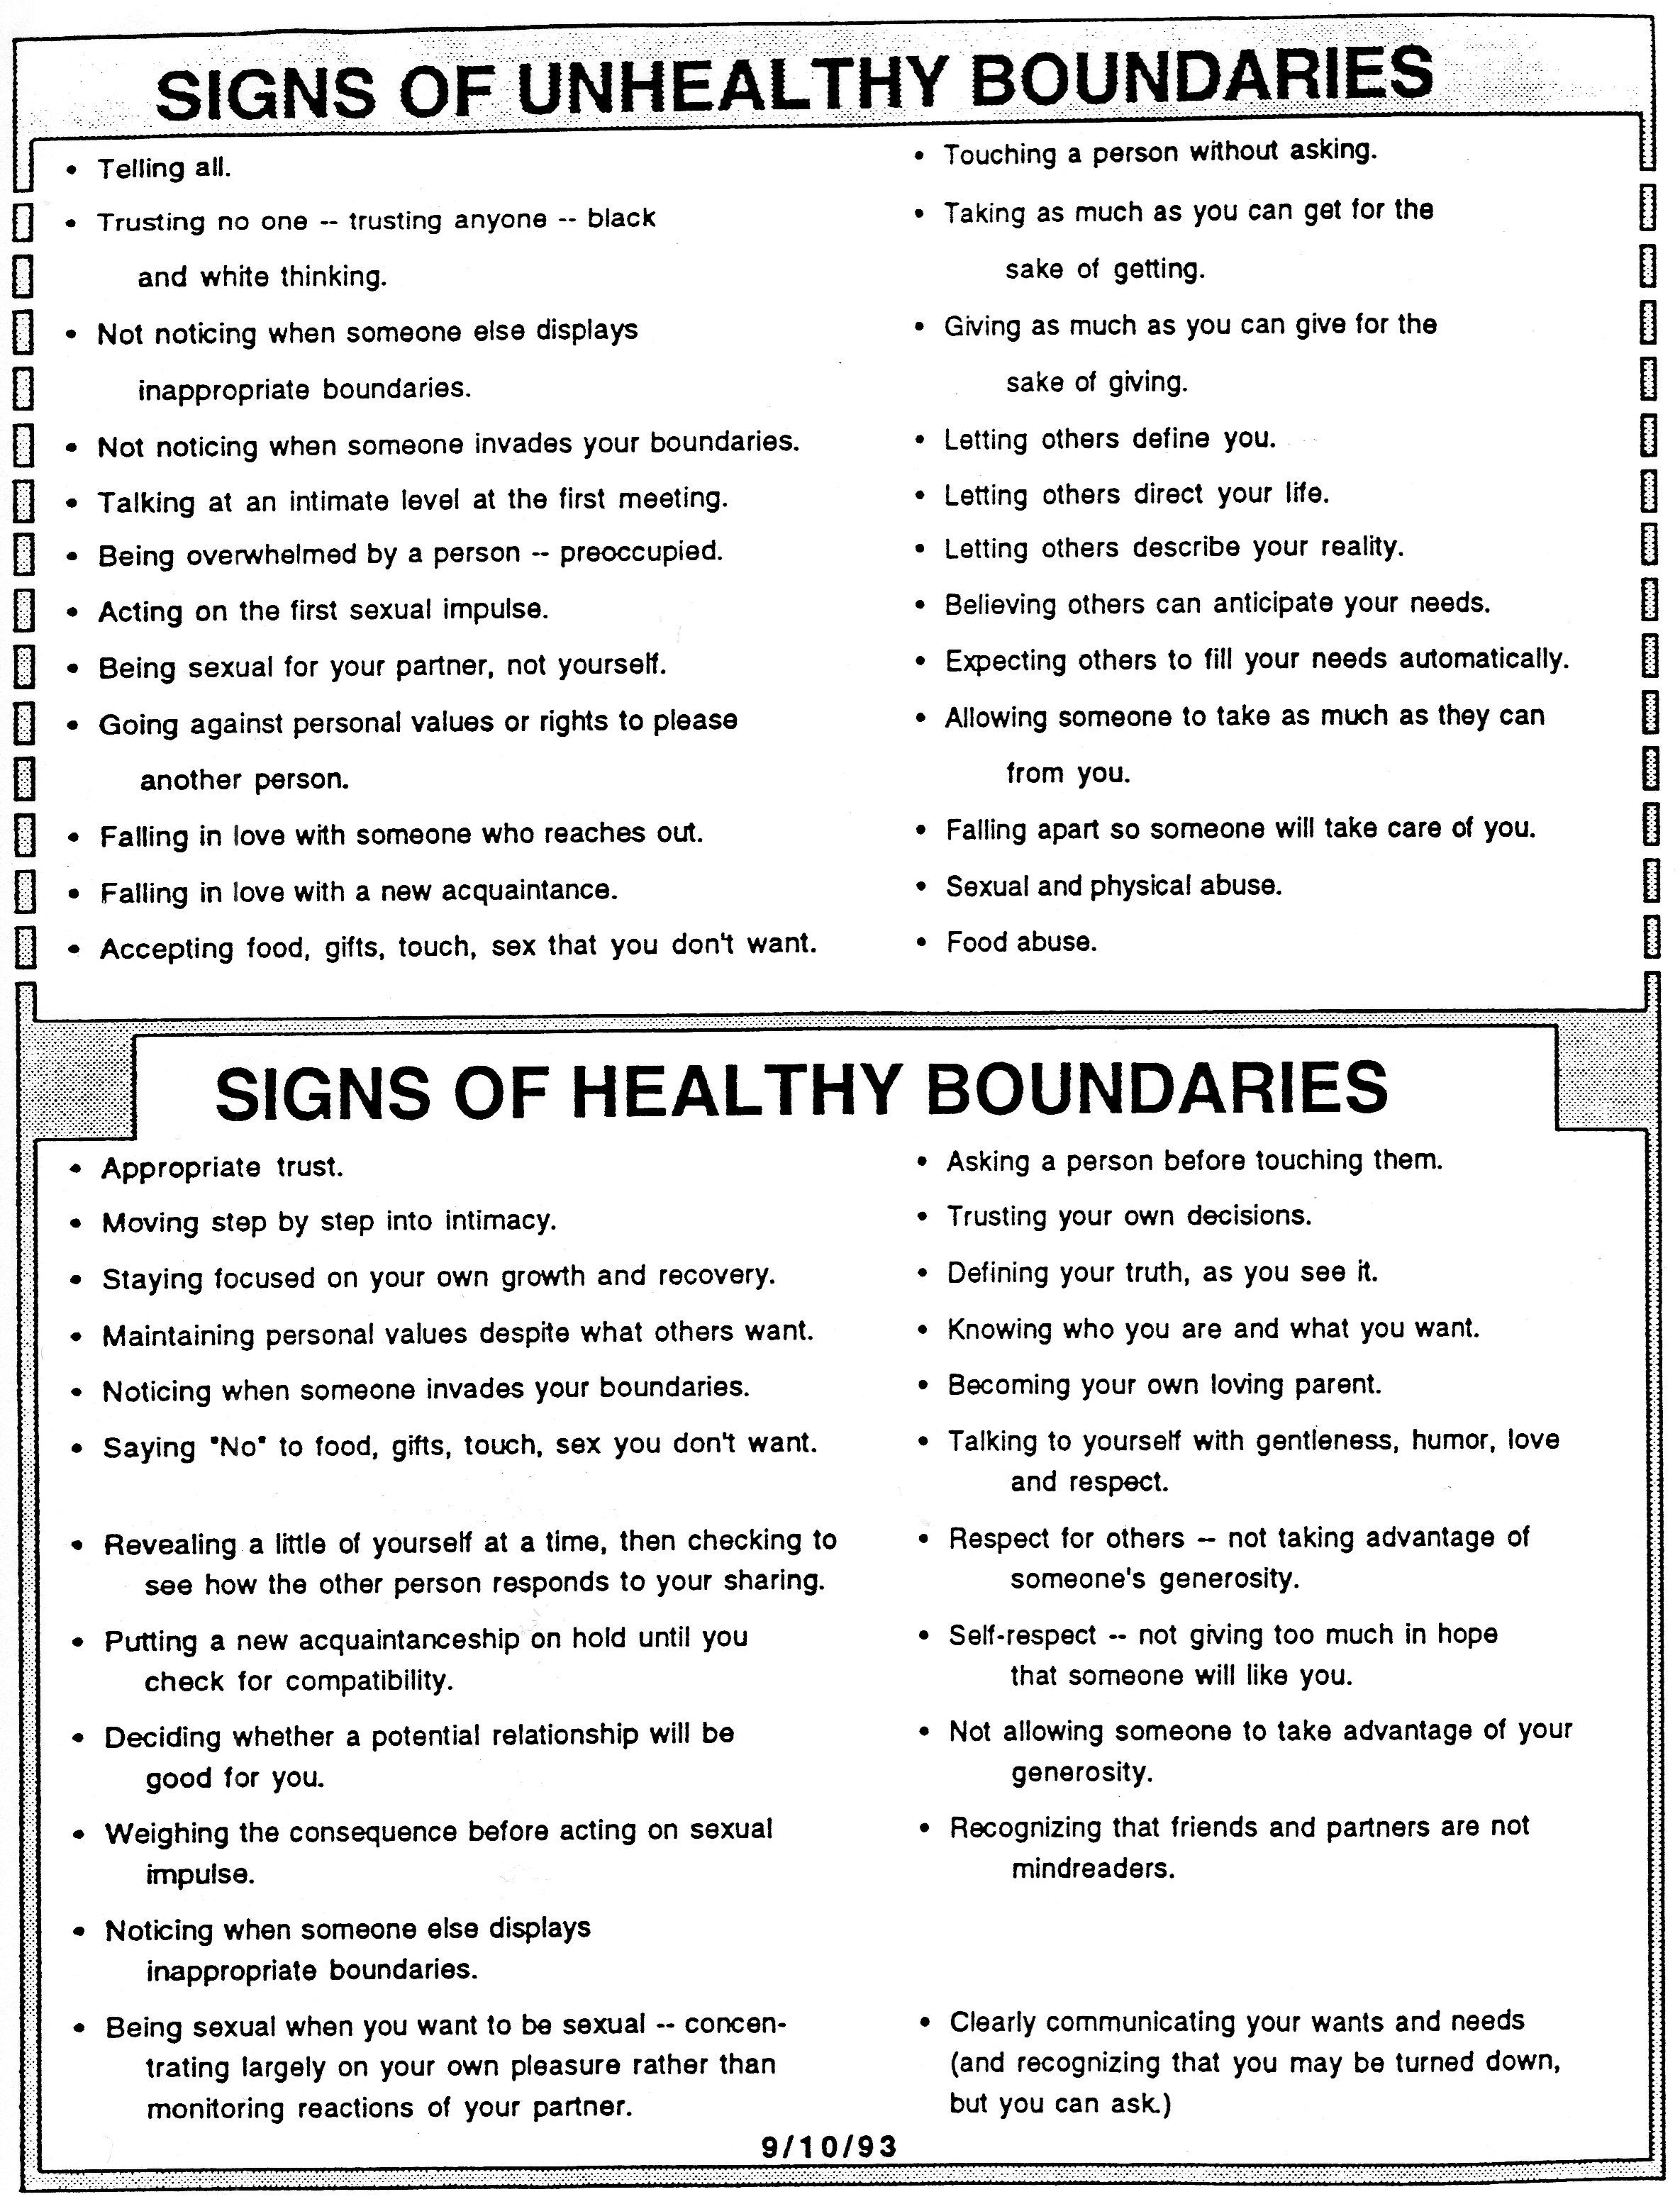 Characteristics Of Unhealthy And Healthy Boundaries